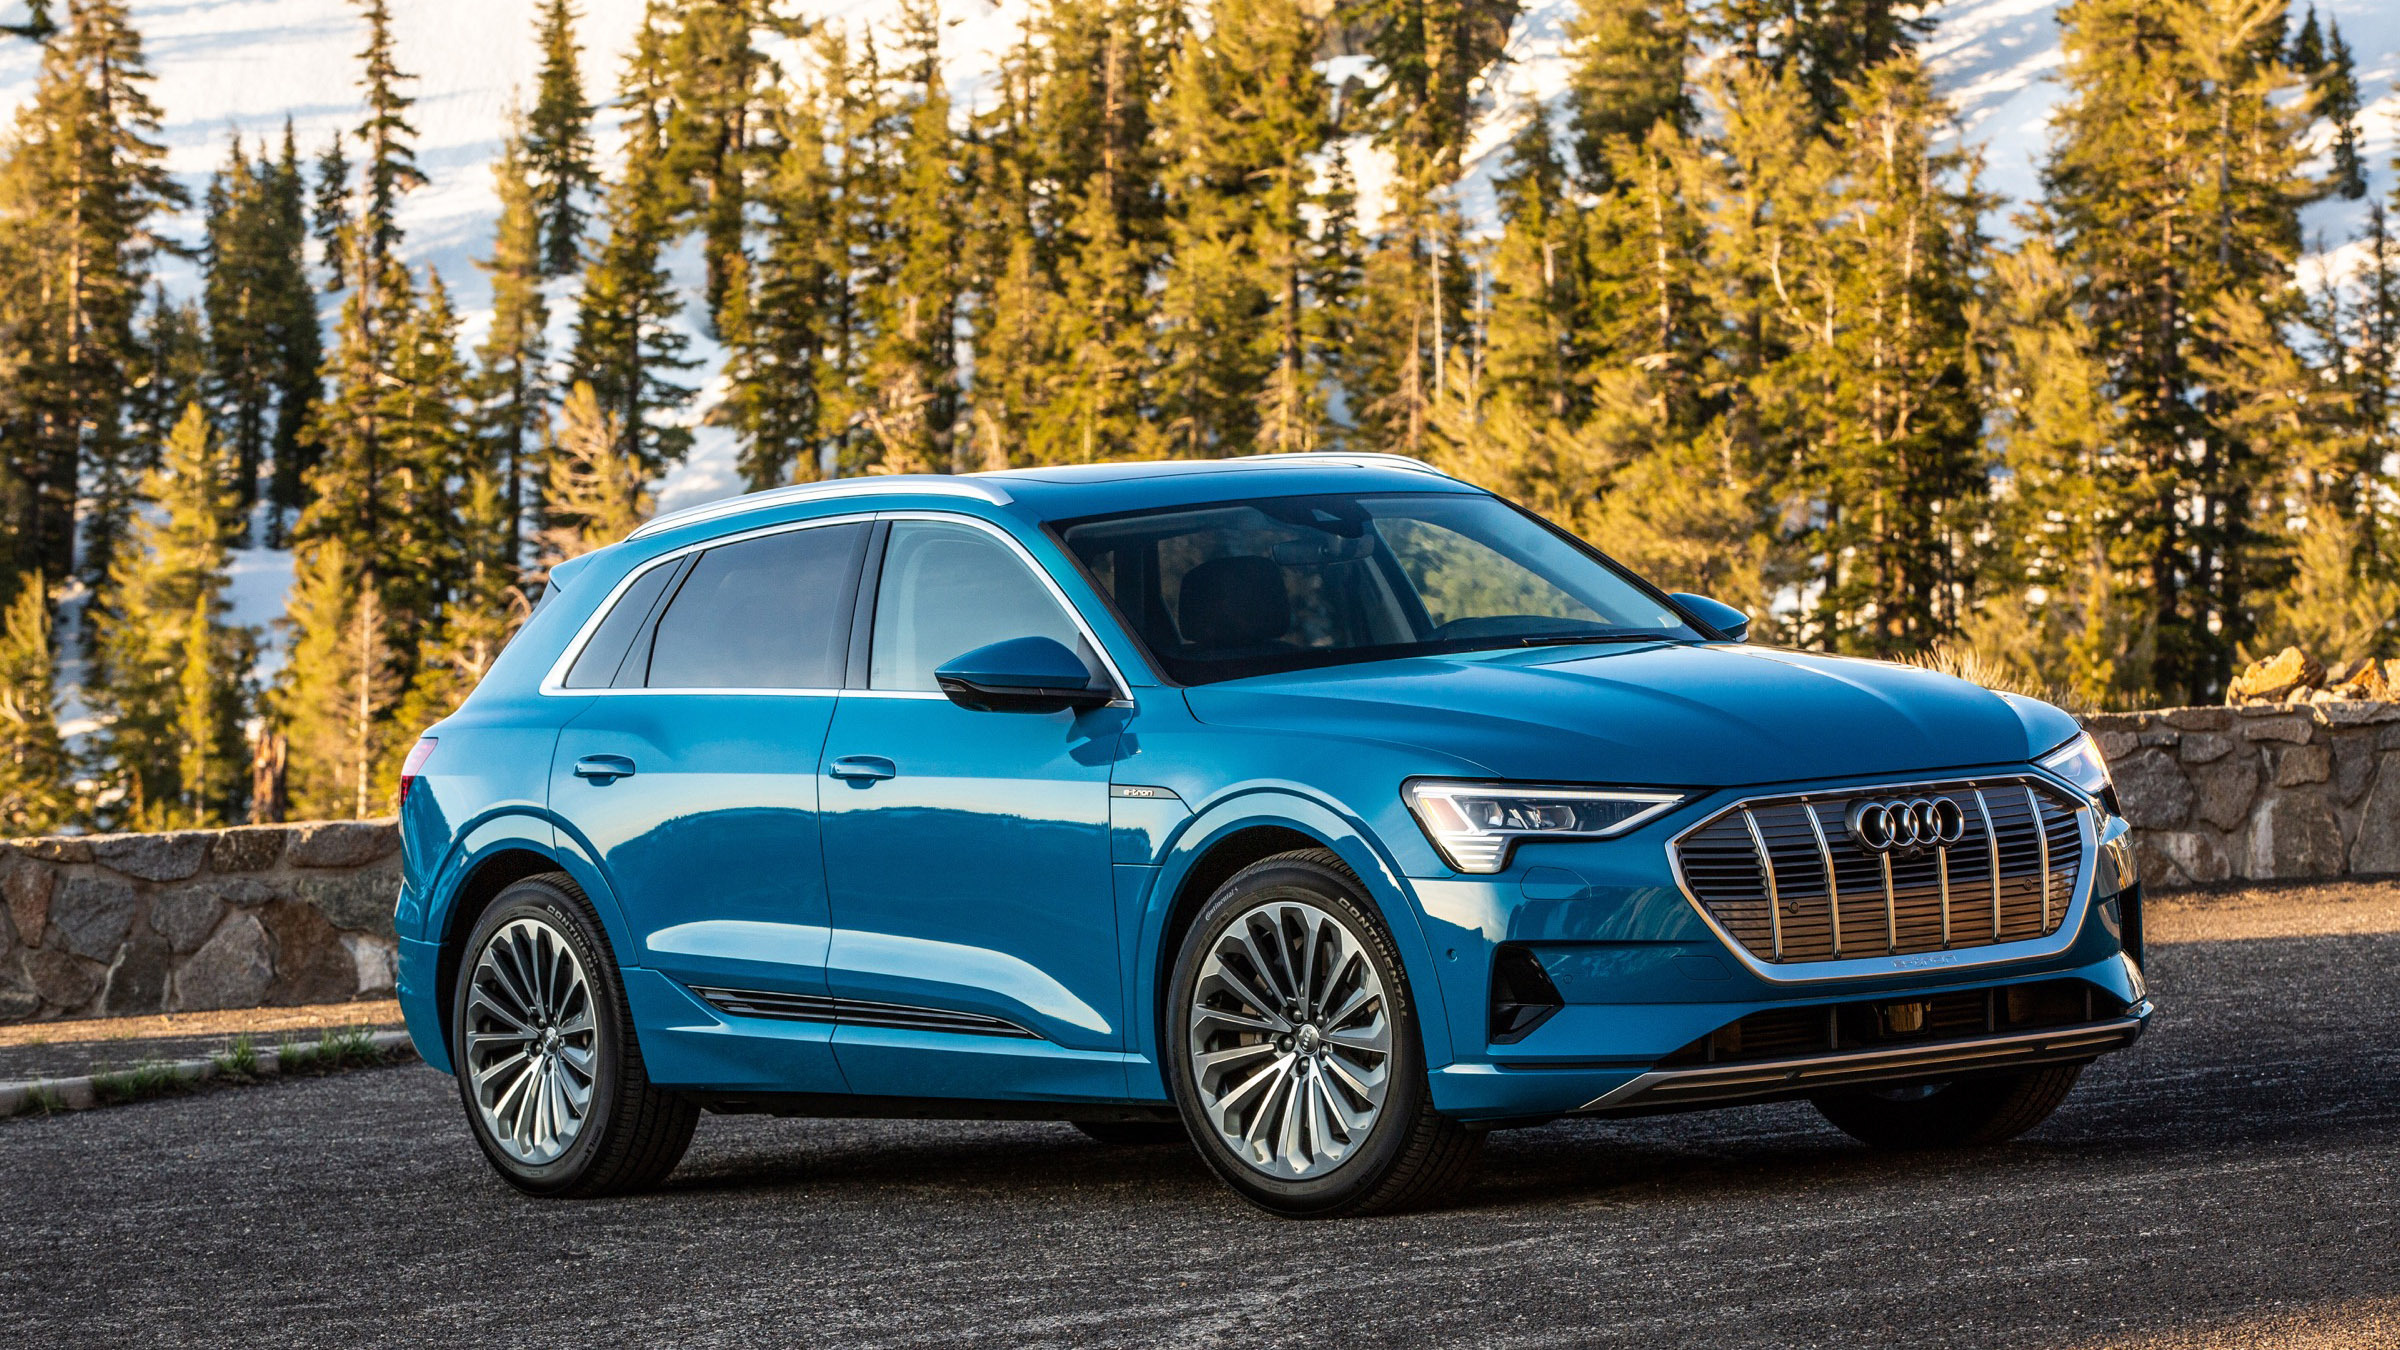 Pre Owned Audi >> 2020 Audi E-Tron Review   Driving impressions, specs ...